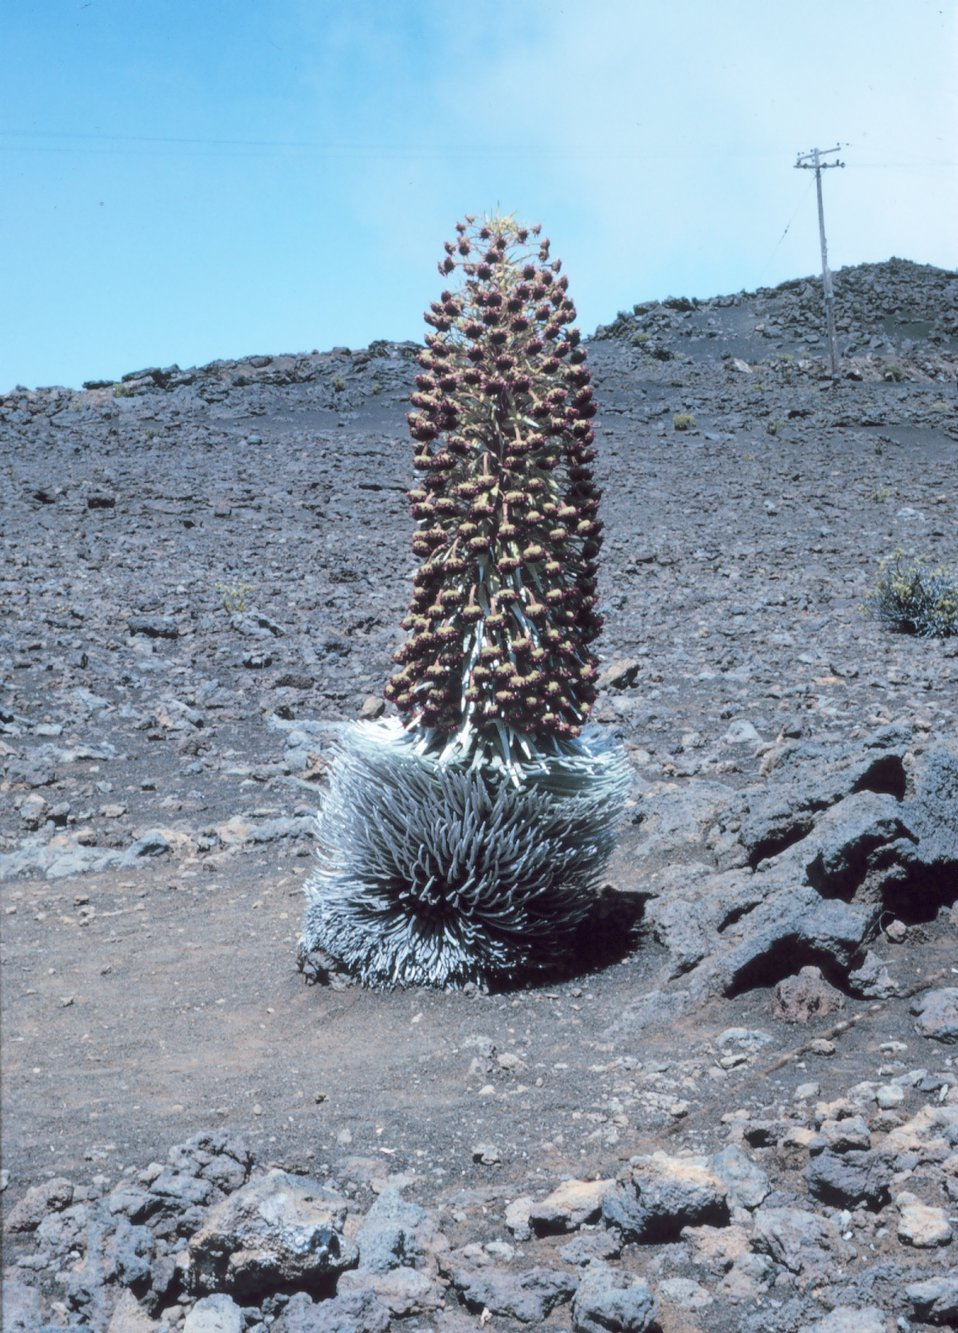 Silver sword growing on Mt. Haleakala